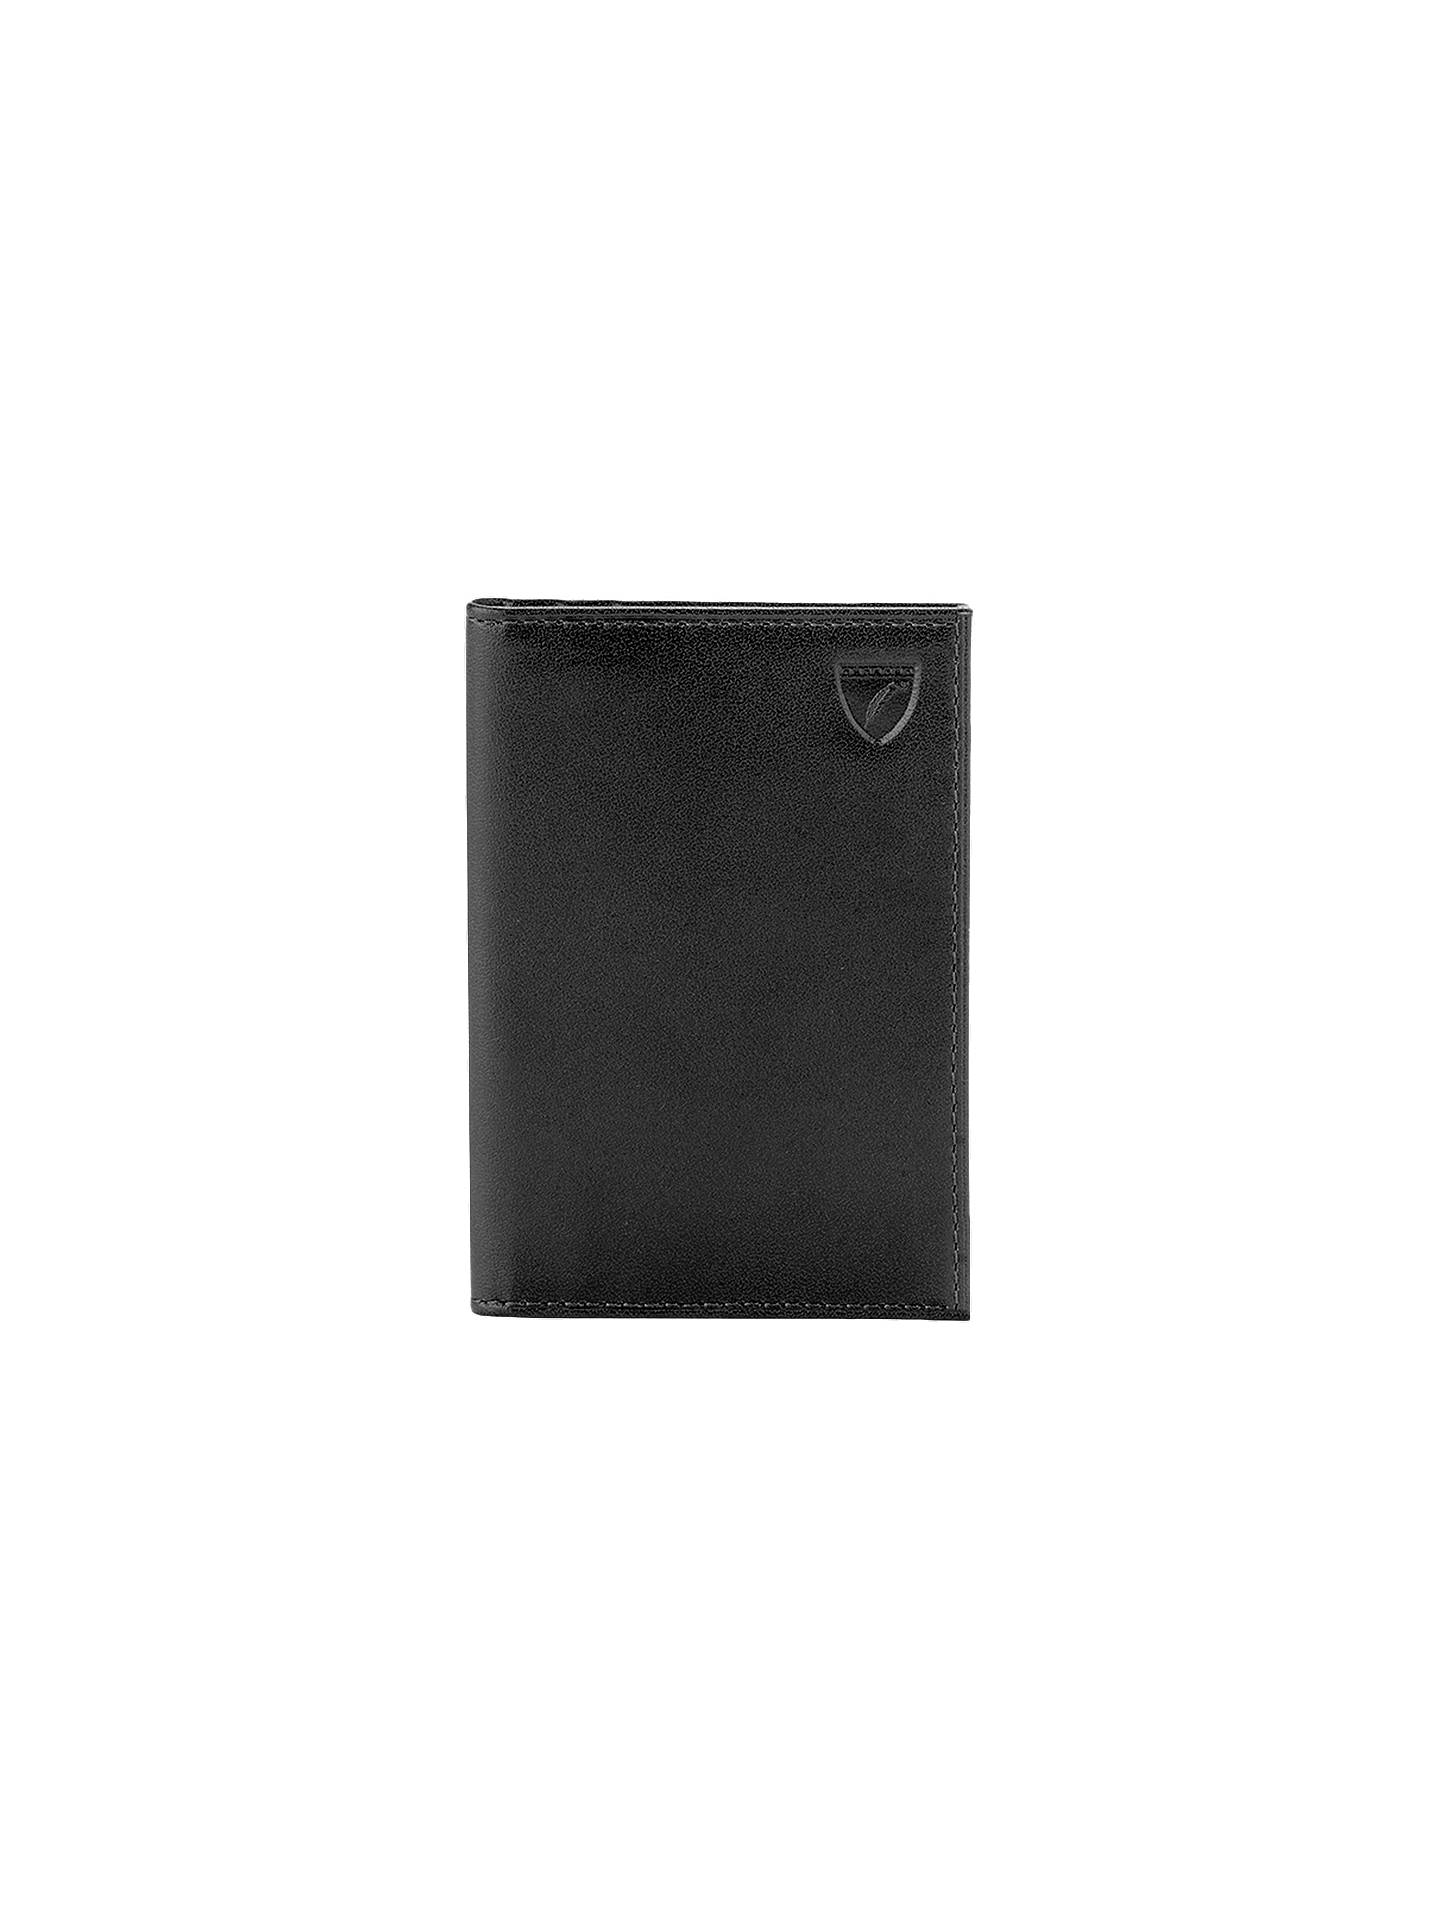 Aspinal of London Leather Double Fold Credit Card Case at John Lewis ... 32bb2ef45d31